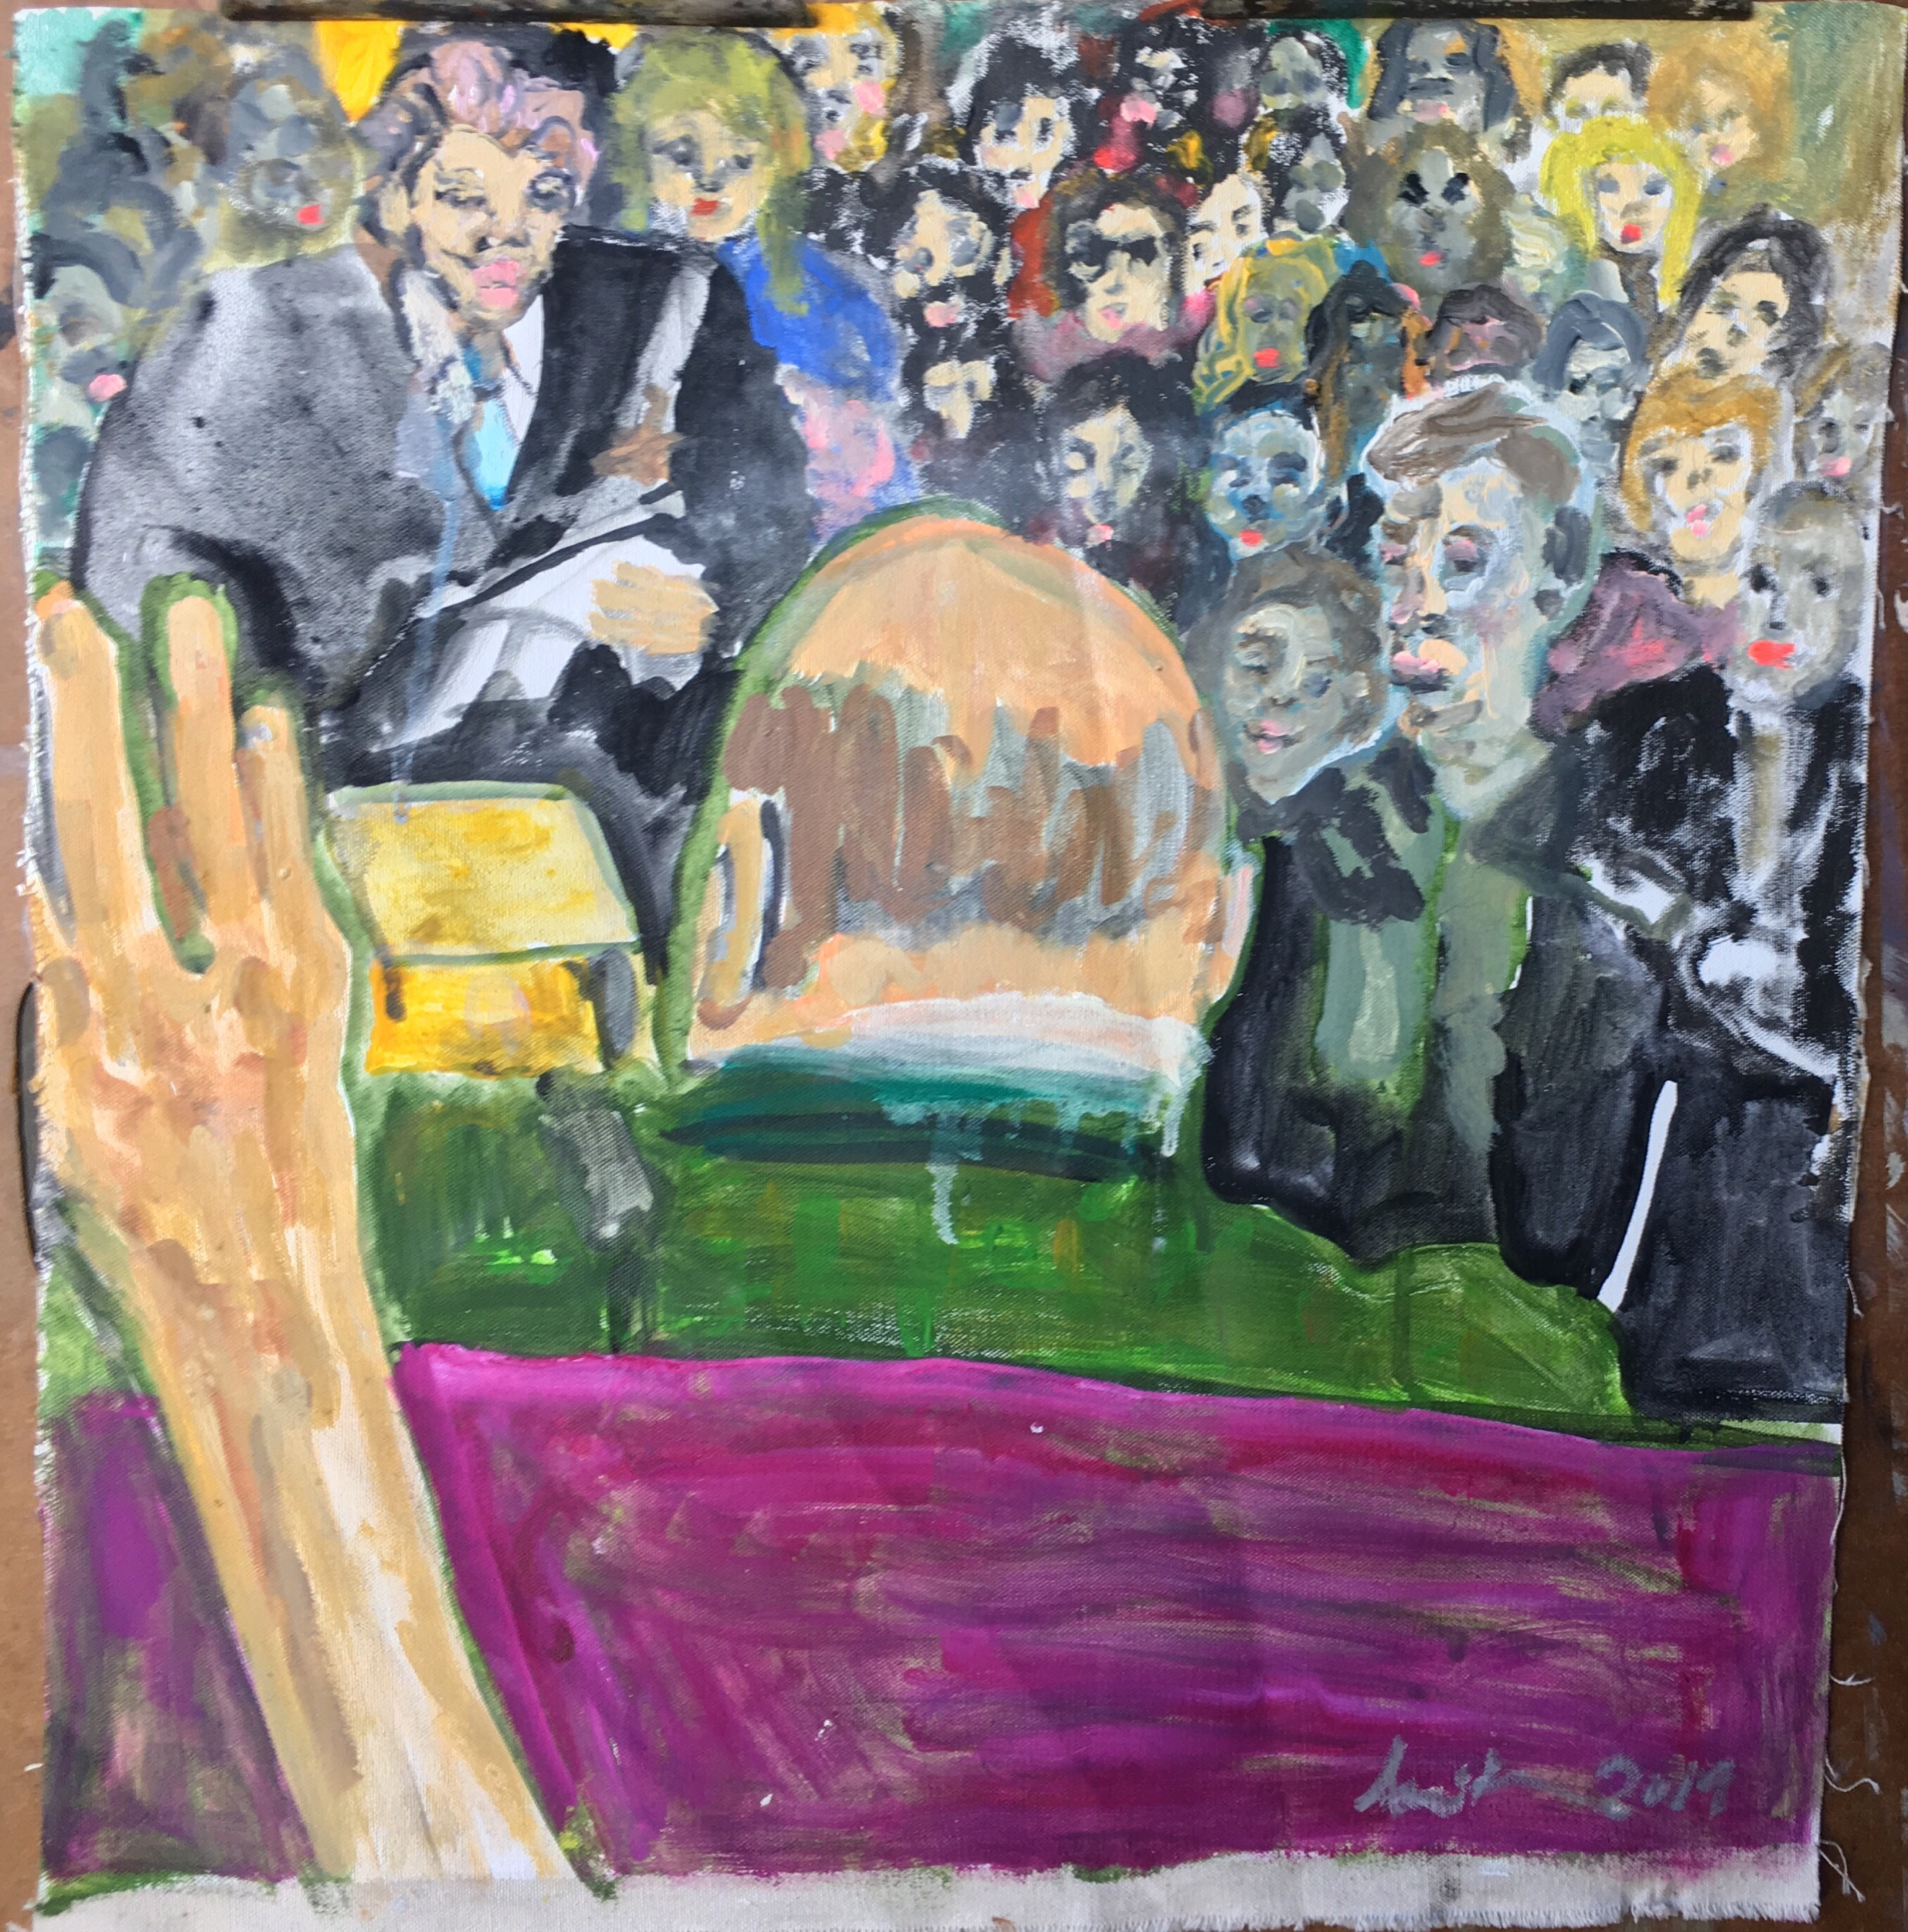 """Ami Tallman, John Dean Testimony, The Swearing In, His Lawyer, The Crowd, gouache and oil on canvas, 7.5"""" x 8"""", 2019  Available. Contact me regarding exhibition or sale."""